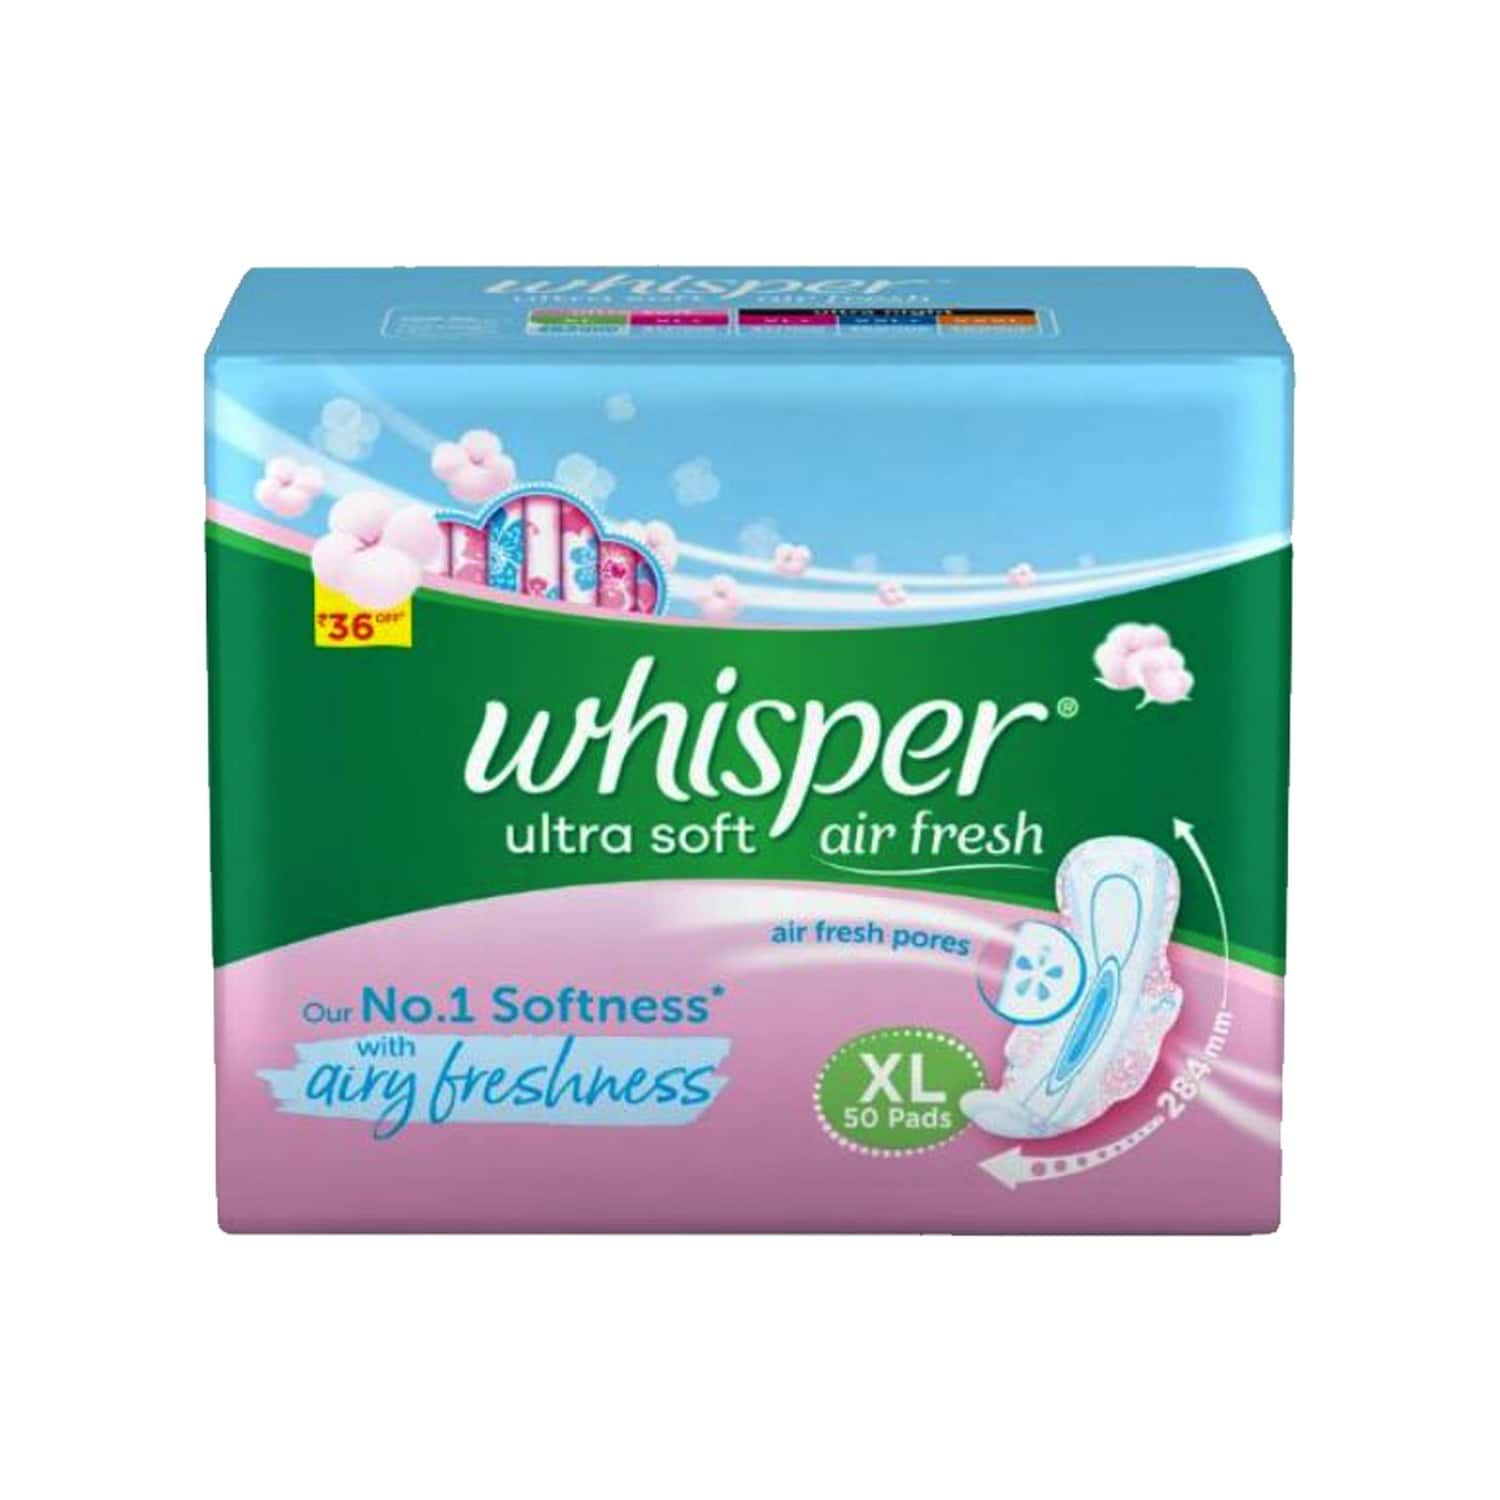 Whisper Ultra Soft Size Xl Sanitary Pads Packet Of 50